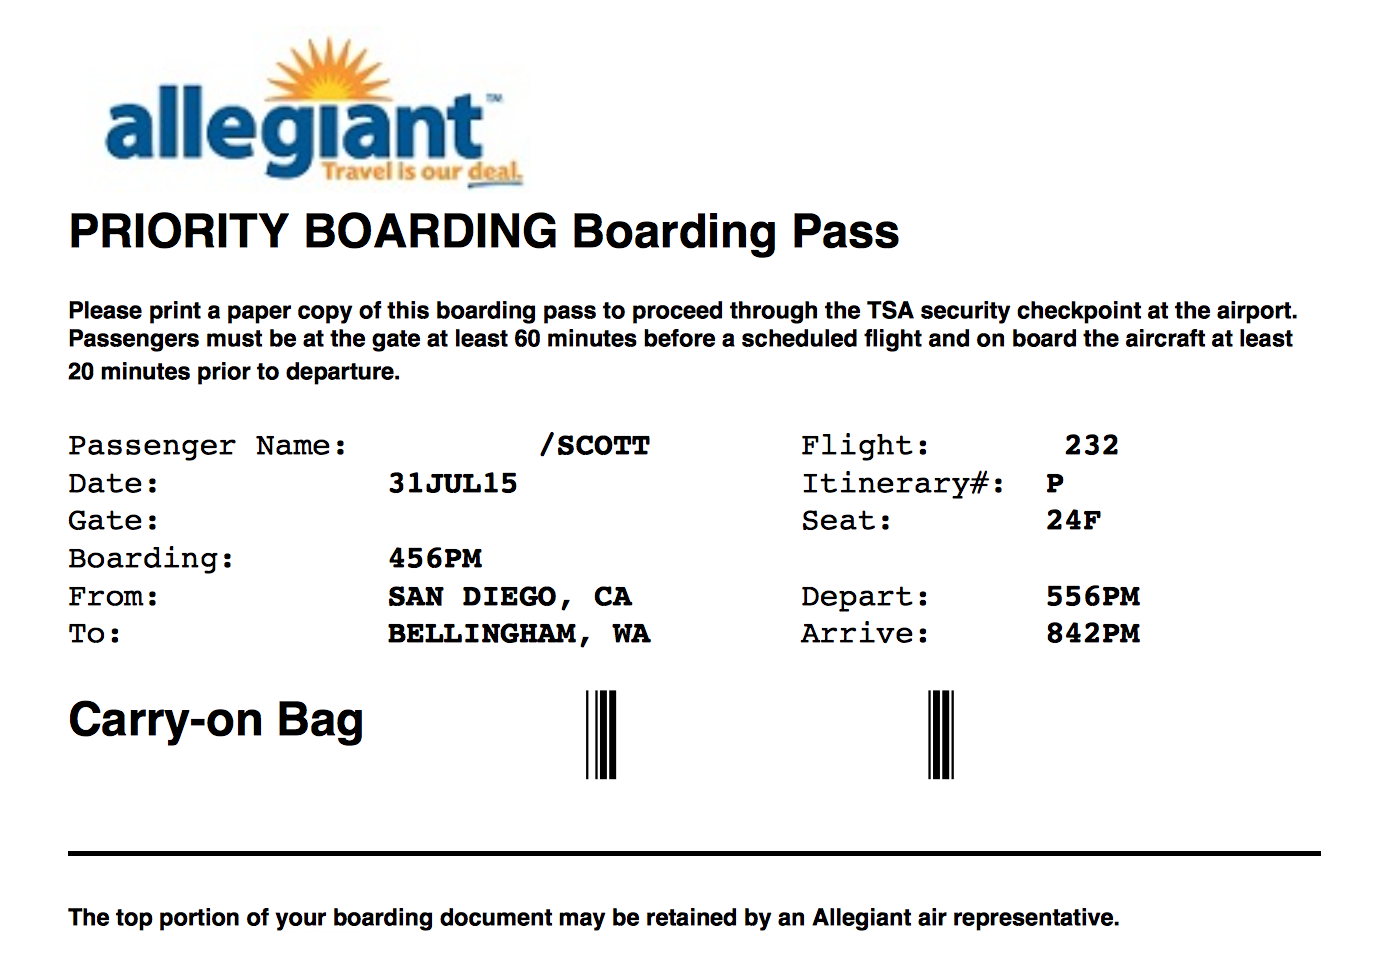 allegiant air boarding pass